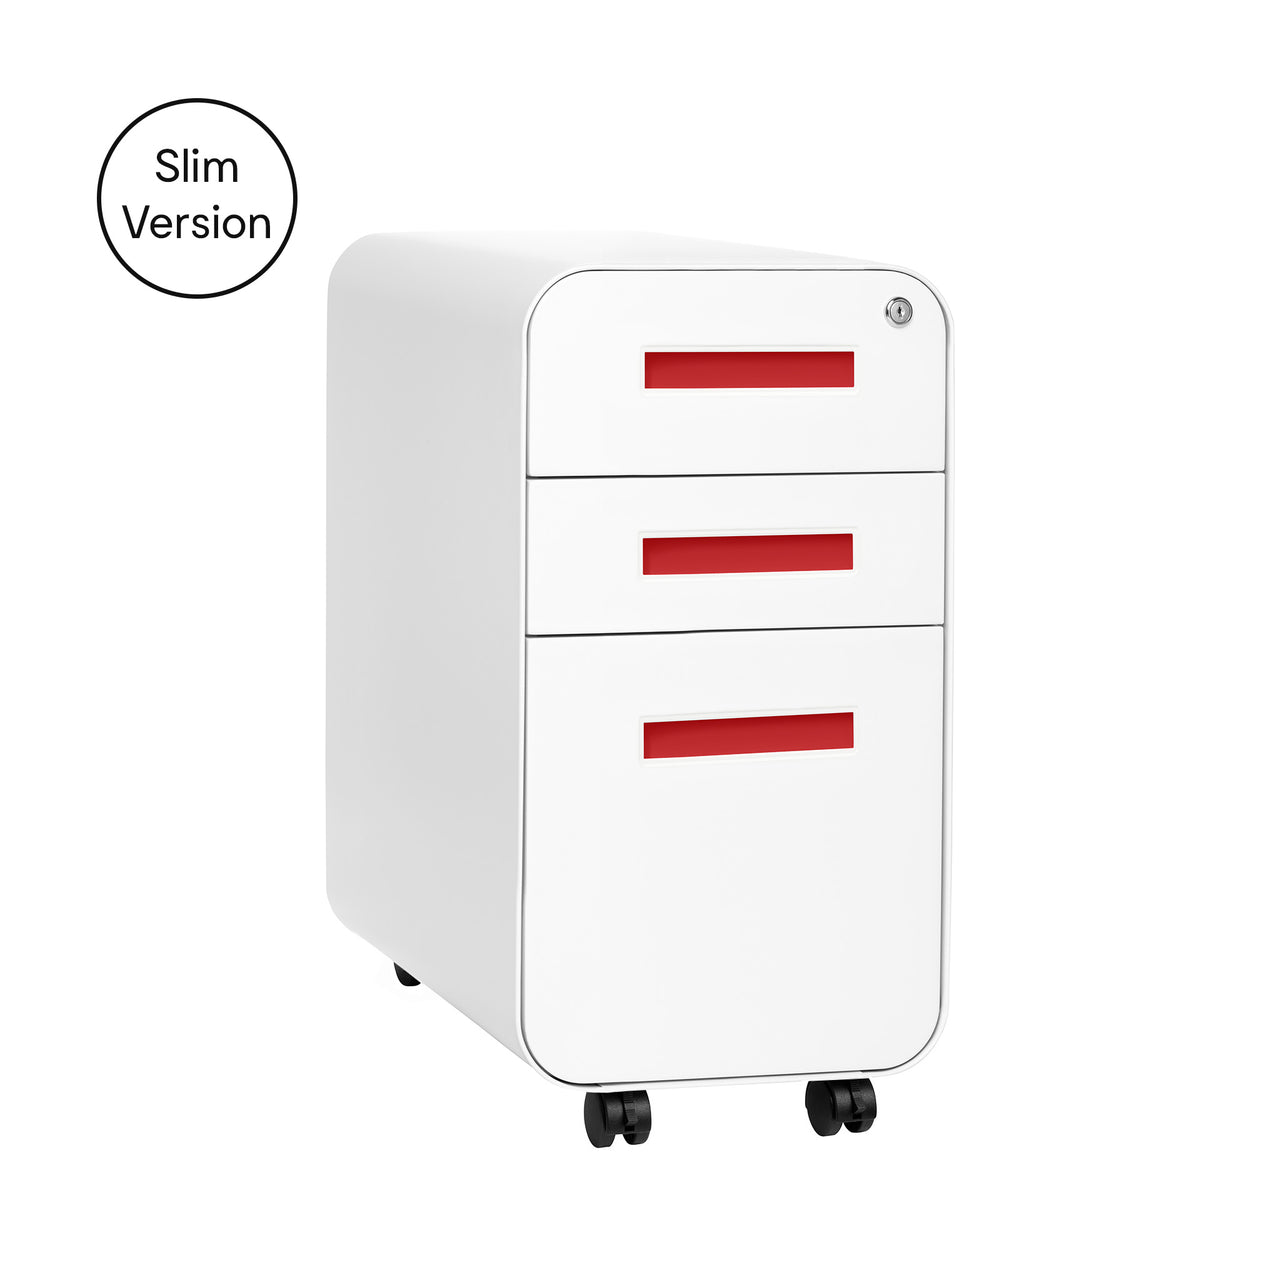 Stockpile Slim File Cabinet (White/Red)